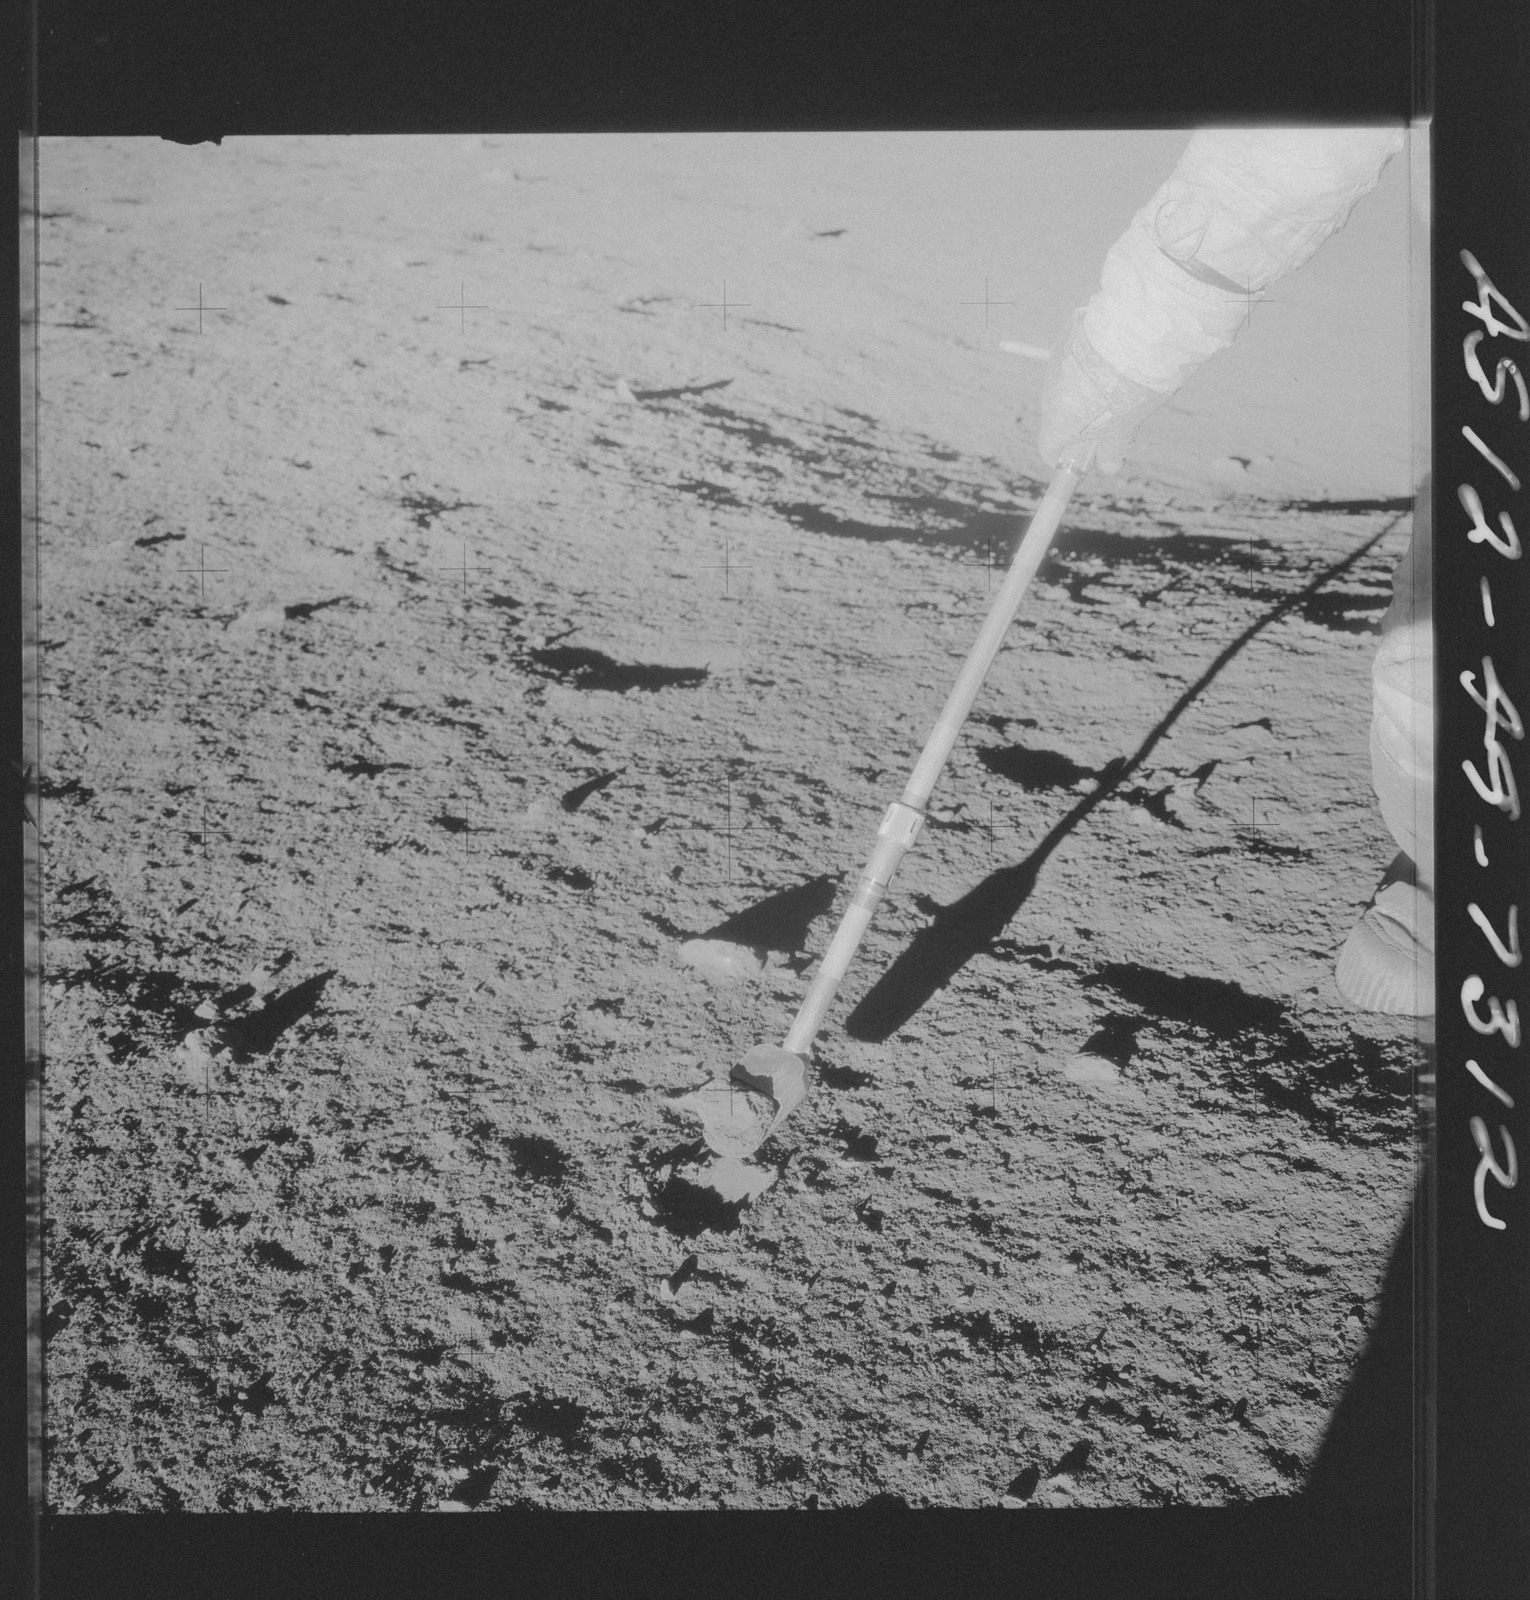 AS12-49-7312 - Apollo 12 - Apollo 12 Mission image  - Charles Conrad Jr., commander, is photographed collection rocks